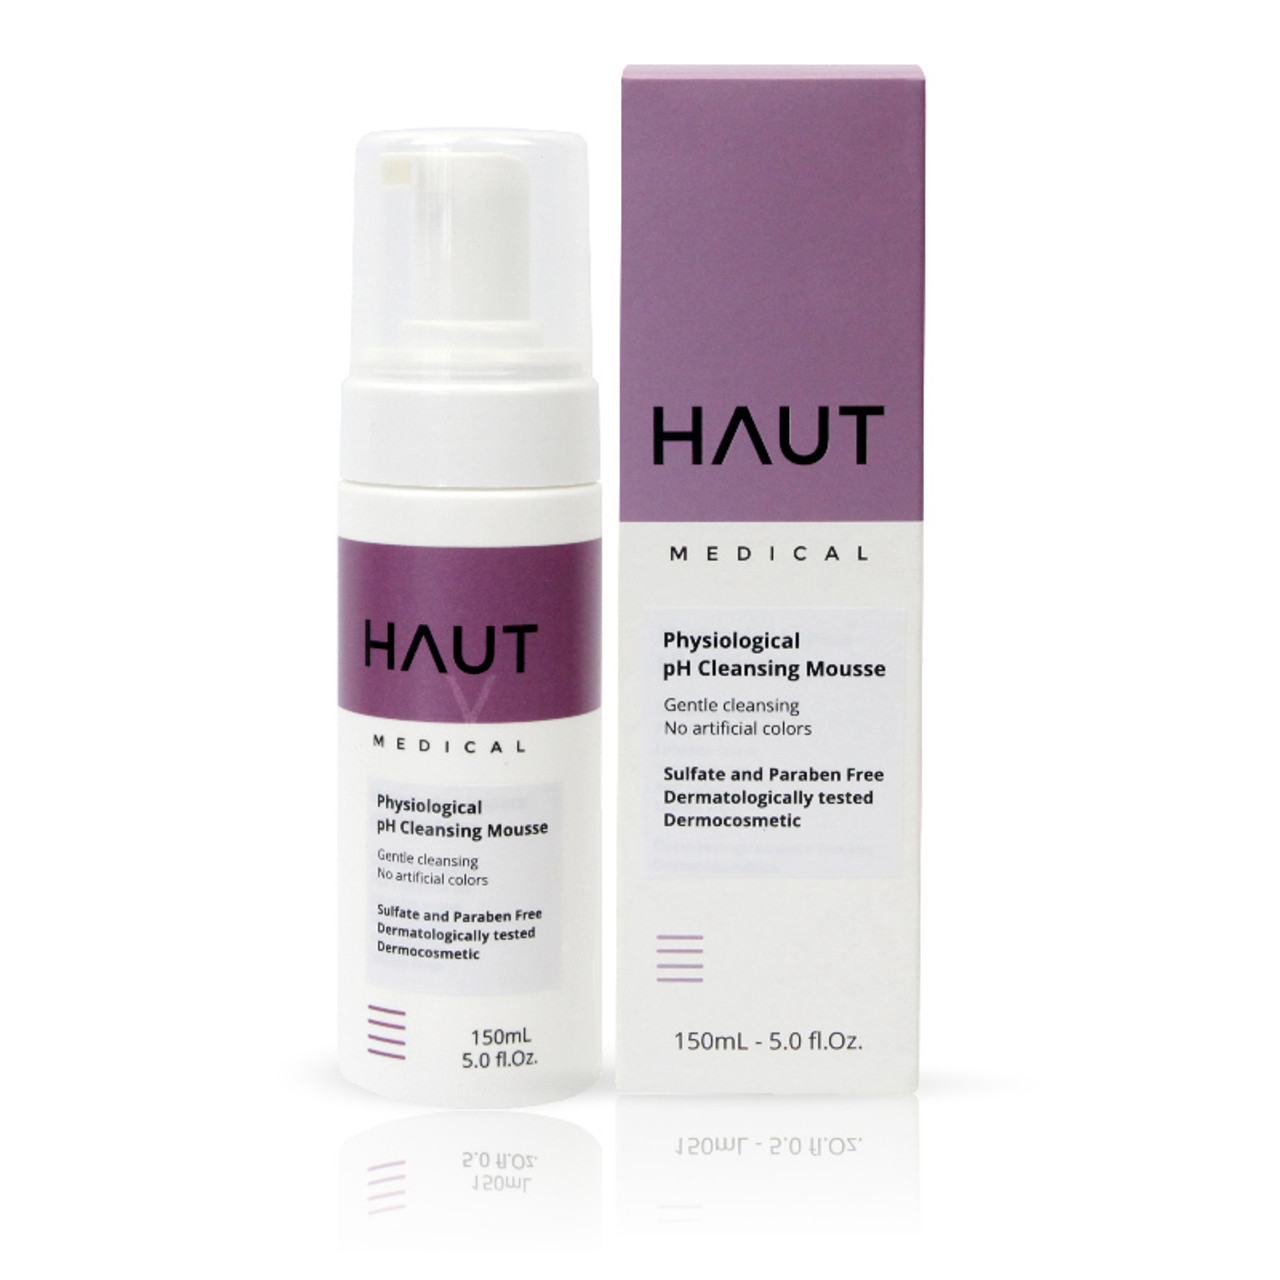 Physiological pH Cleansing Mousse - Permanent Makeup (PMU) and Body Tattooing - 150ml